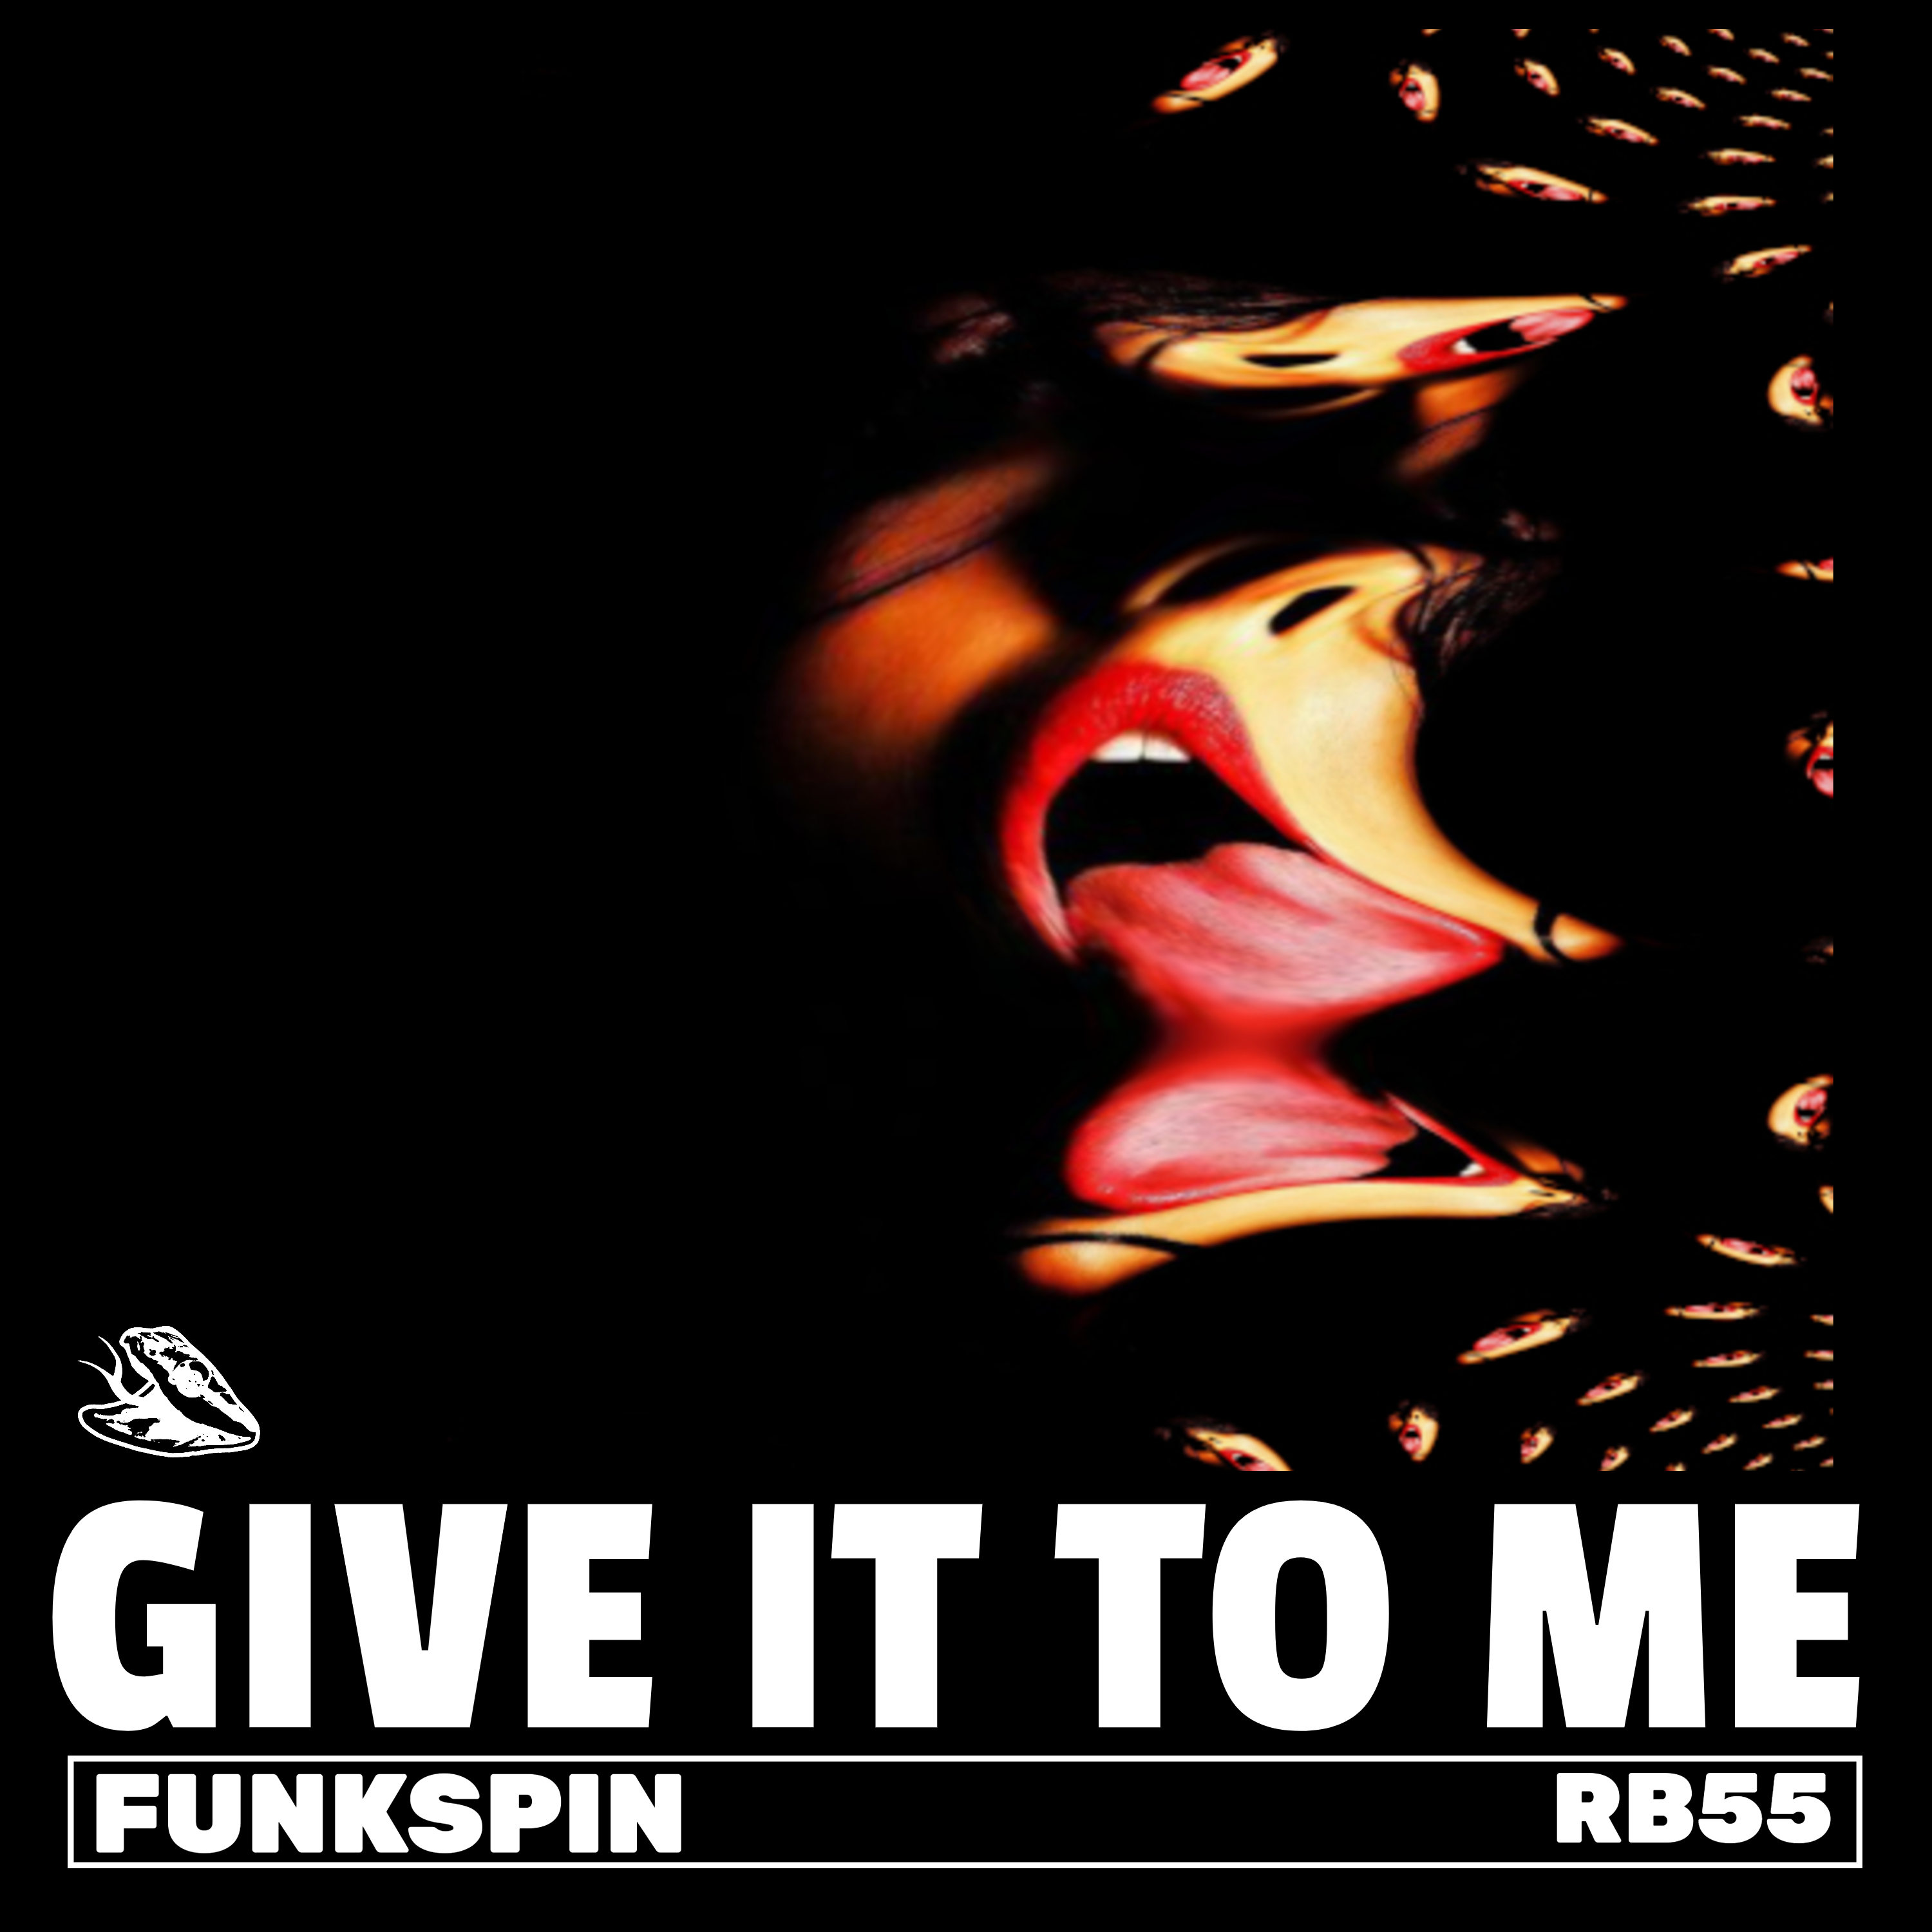 Give It To Me Image